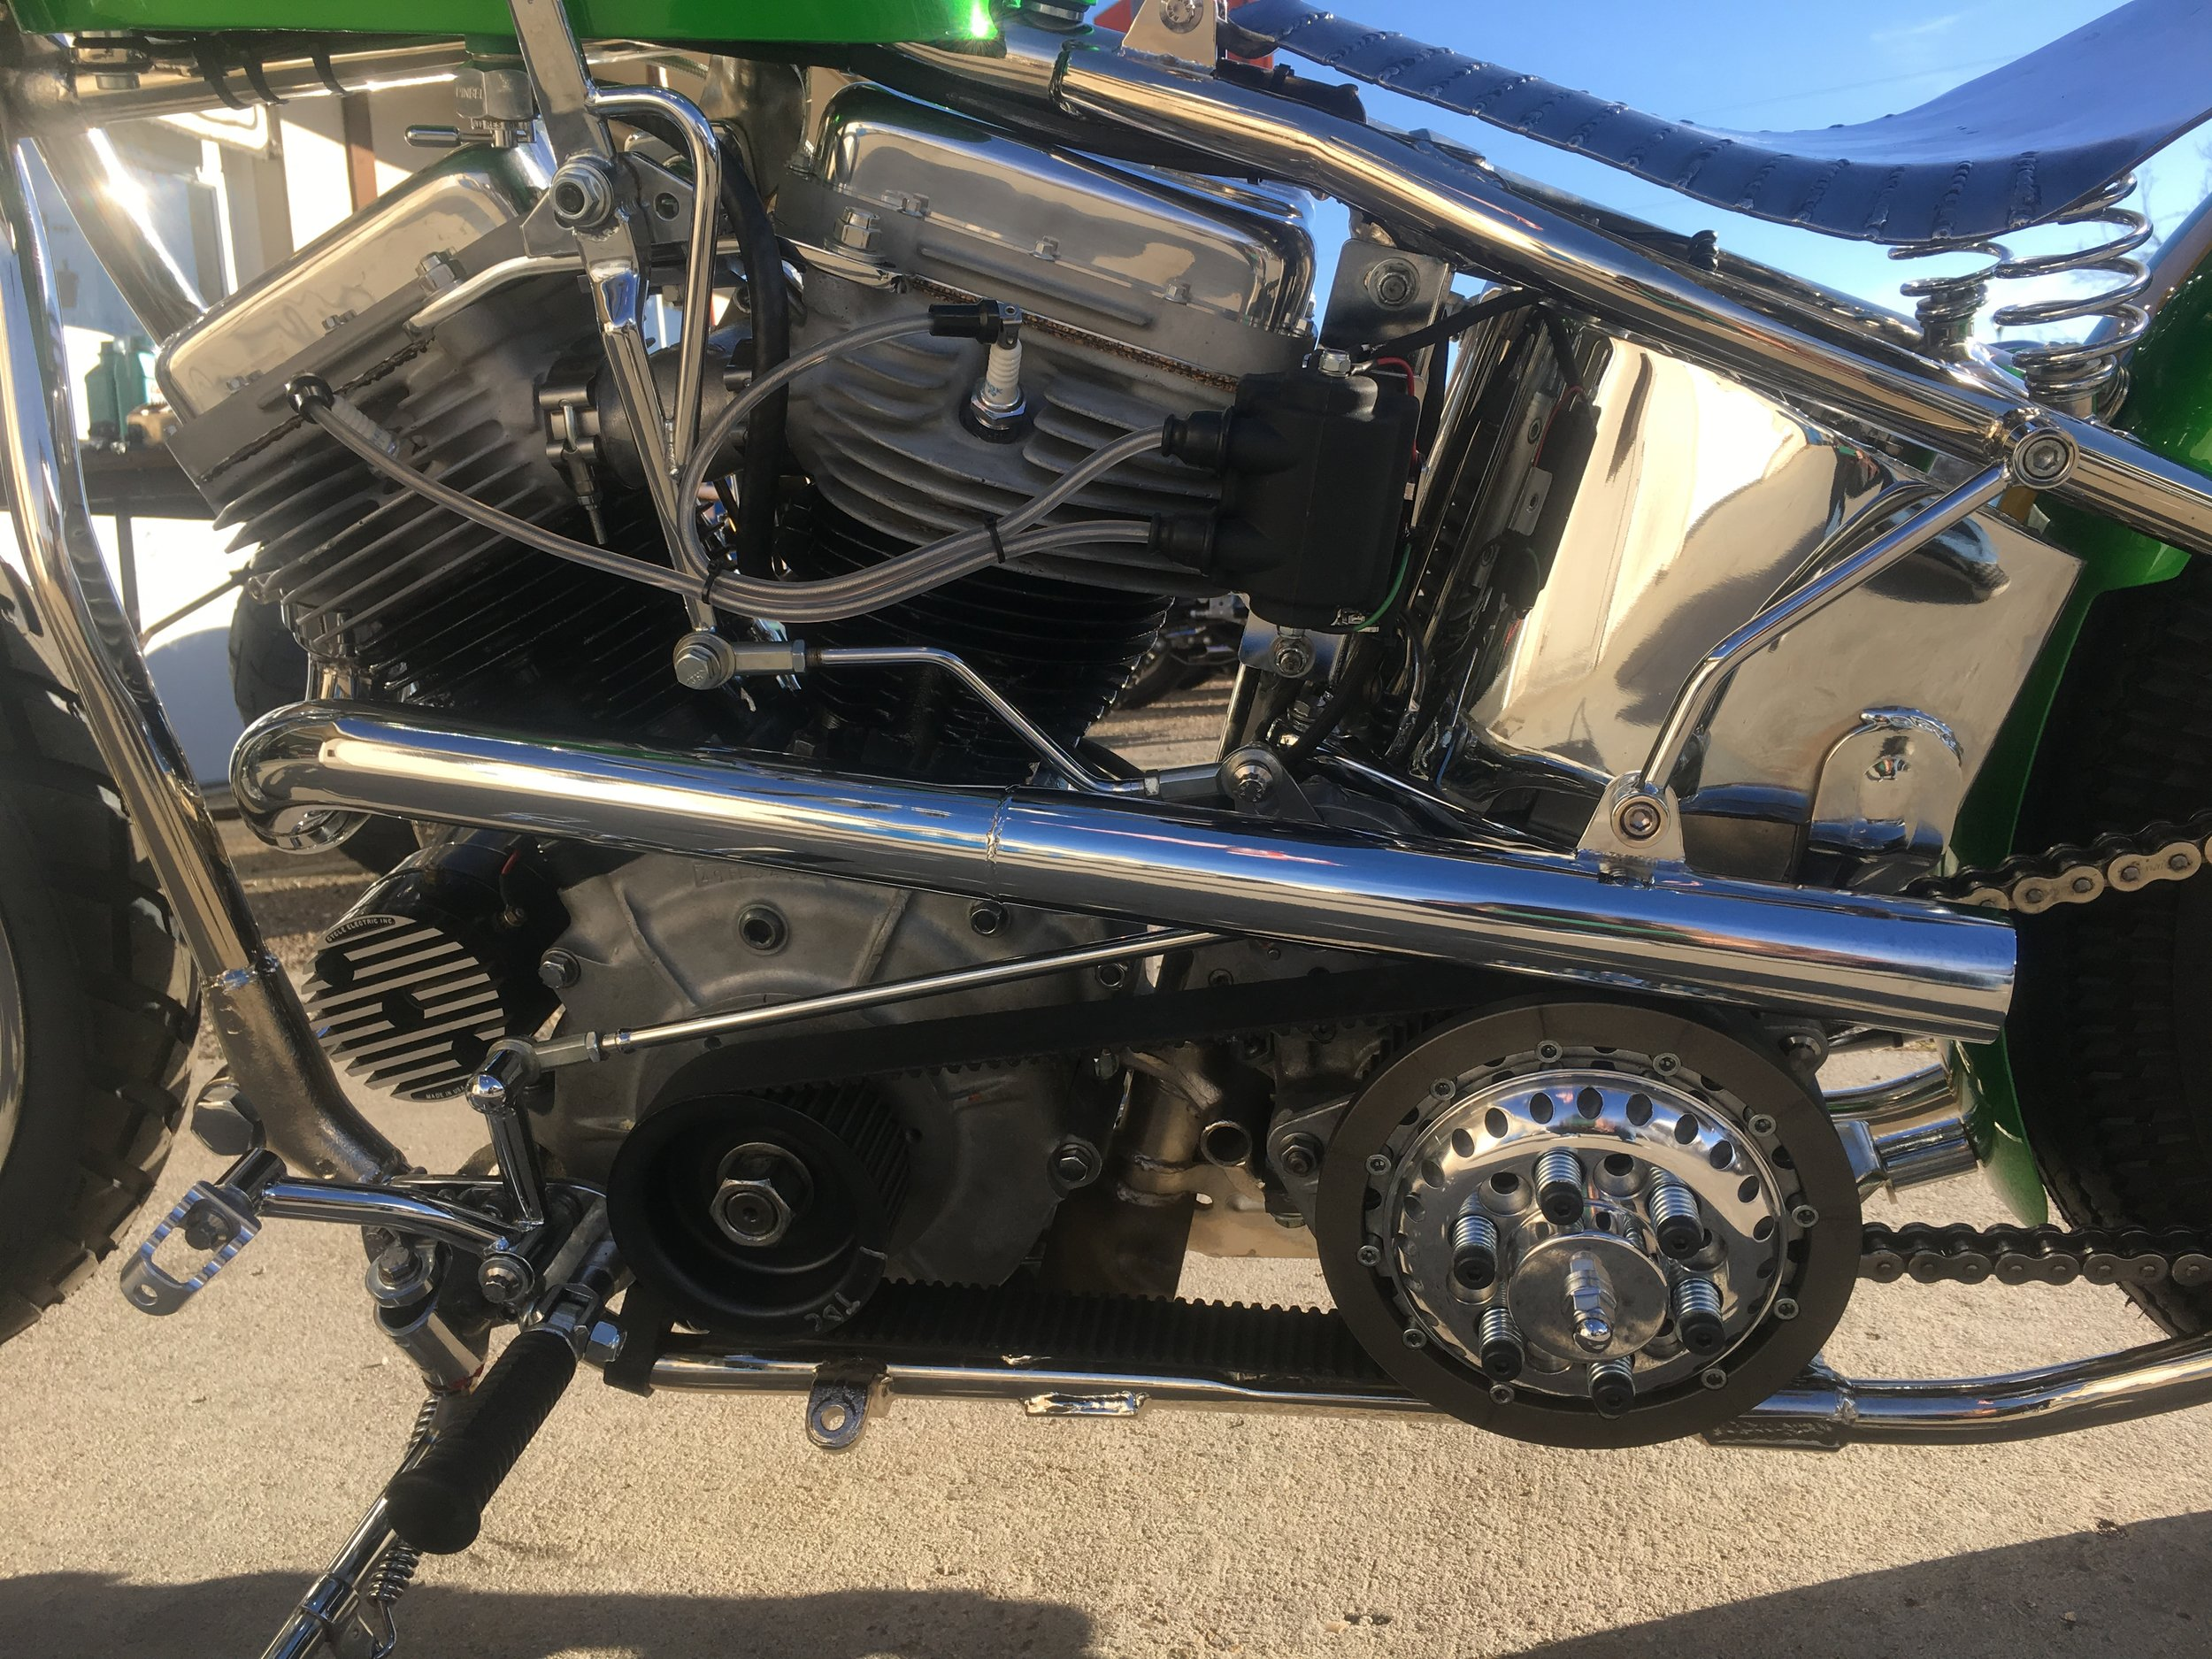 1949 Panhead Chopper with BDL open belt drive (modified by Todd).  Hand built forward controls, exhaust, hand shift linkage and shifter, seat pan by Todd Apple